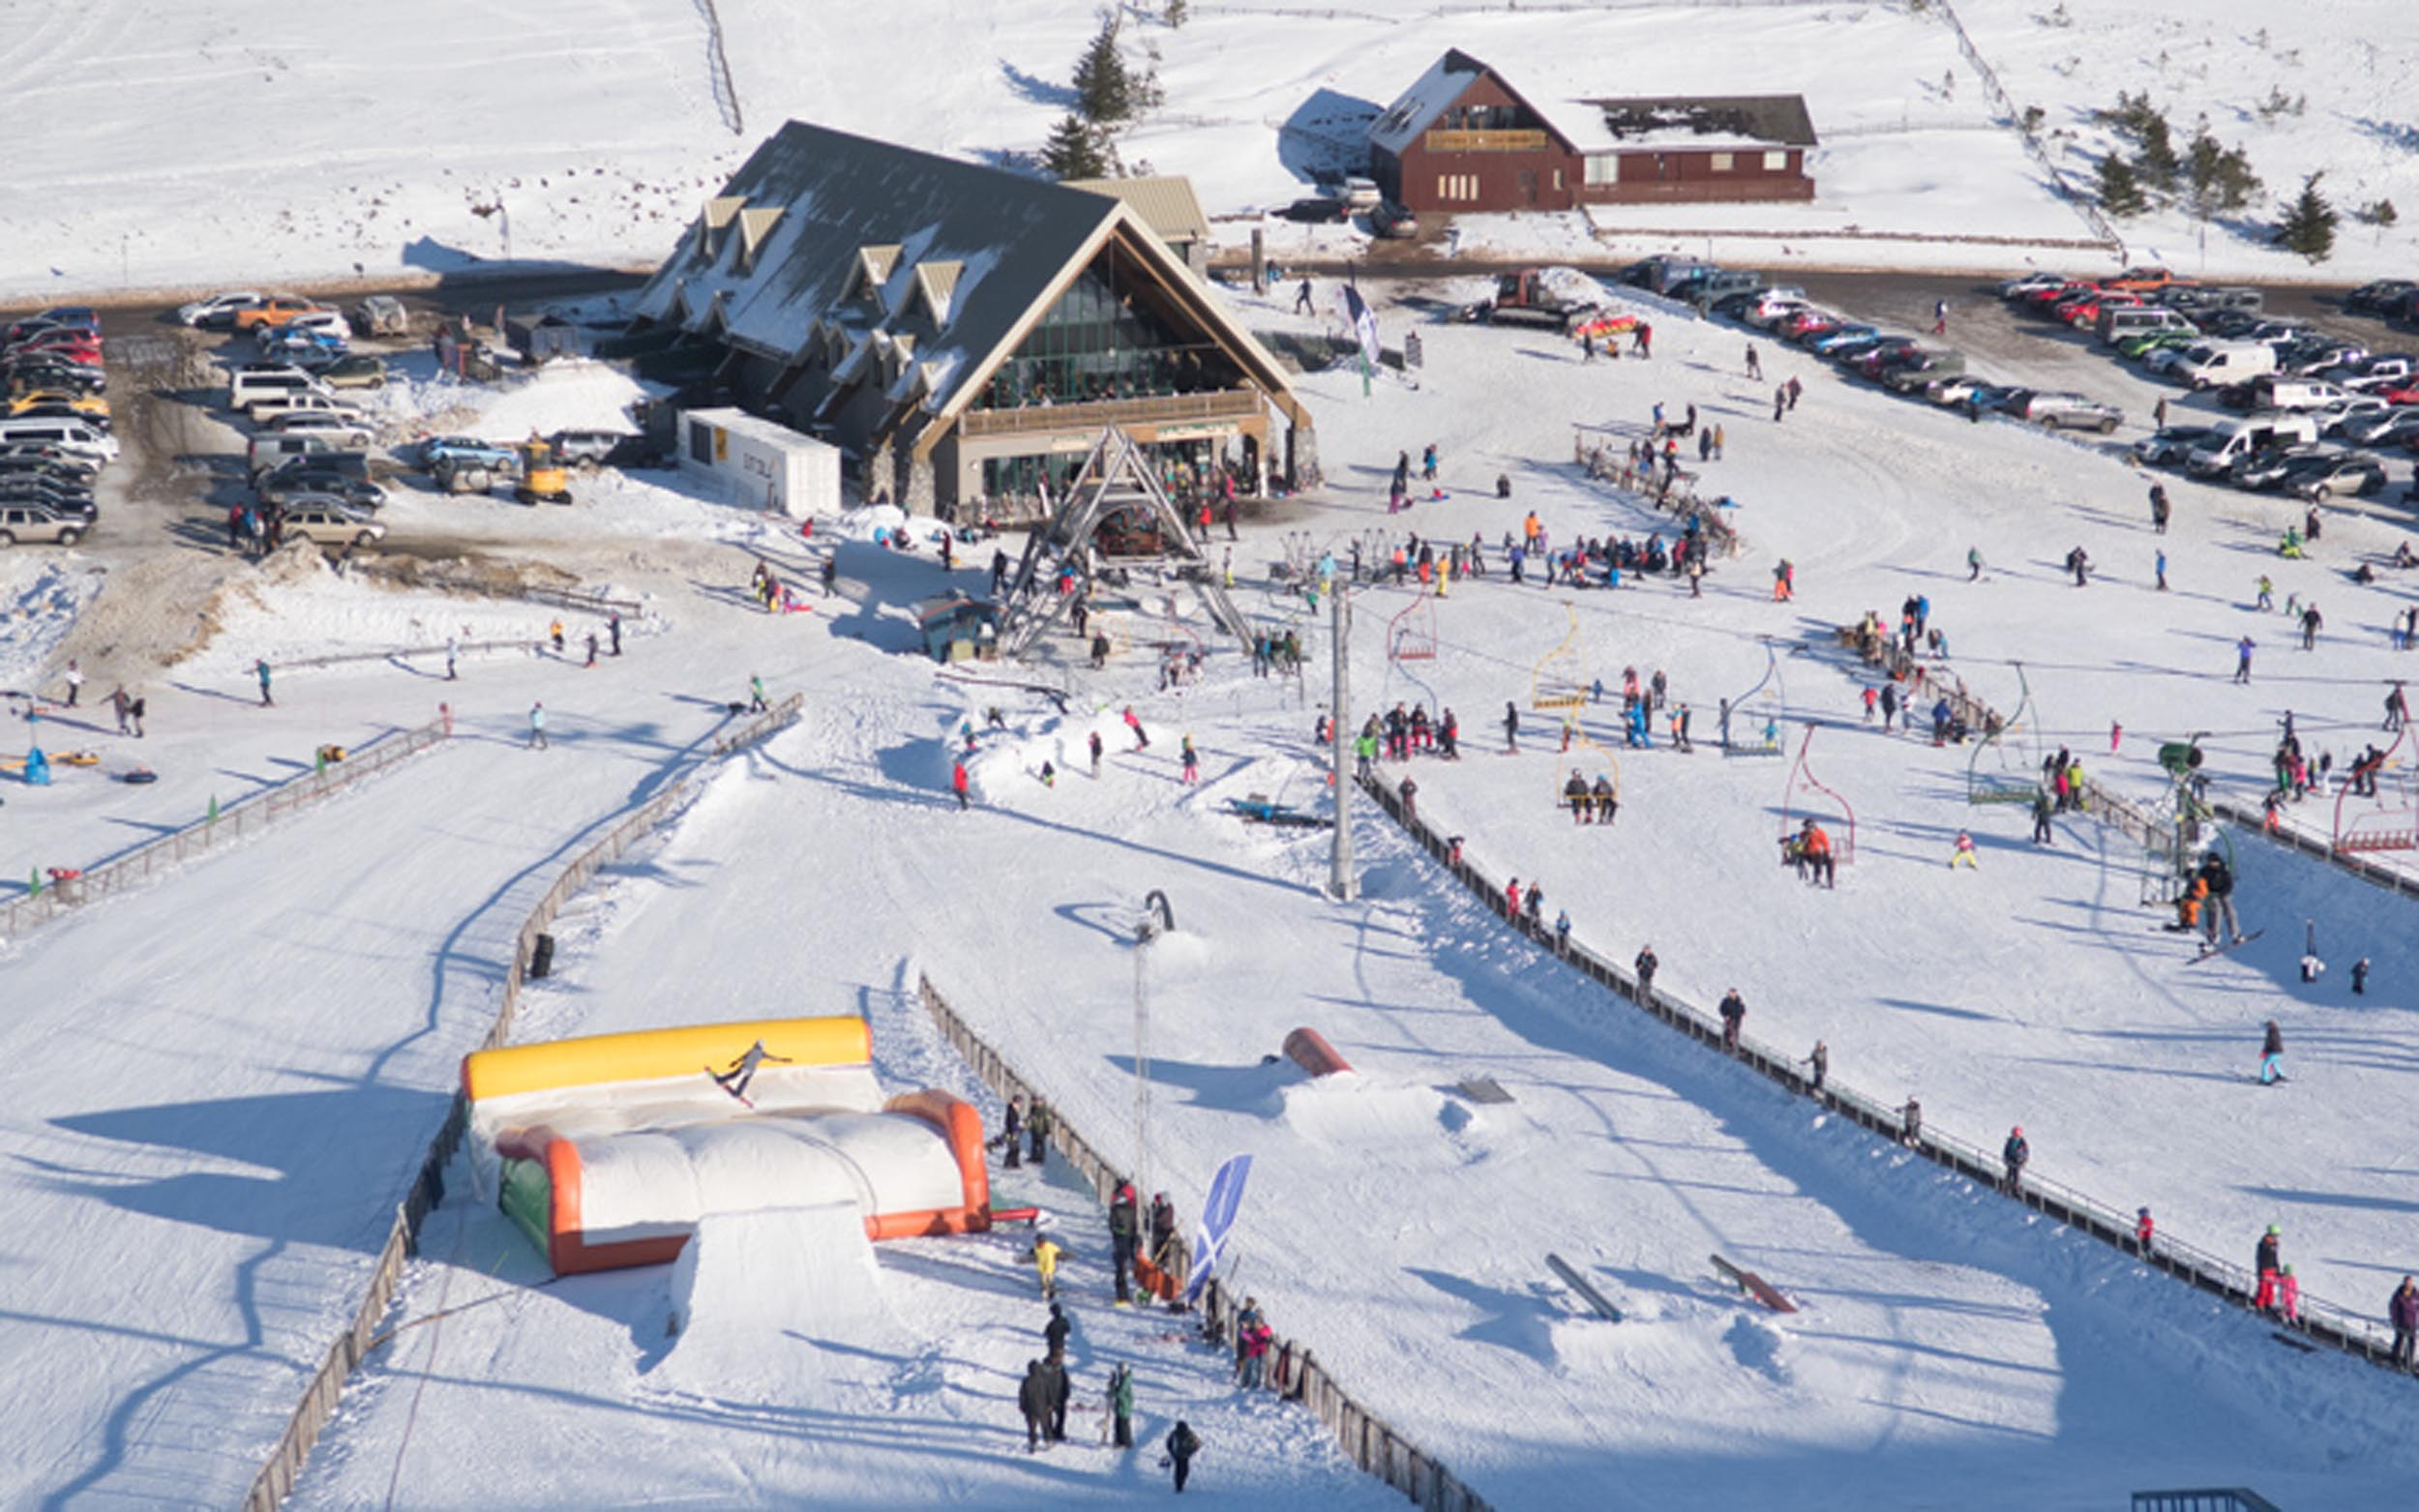 Skiing in the Cairngorms: Top Ski Resorts